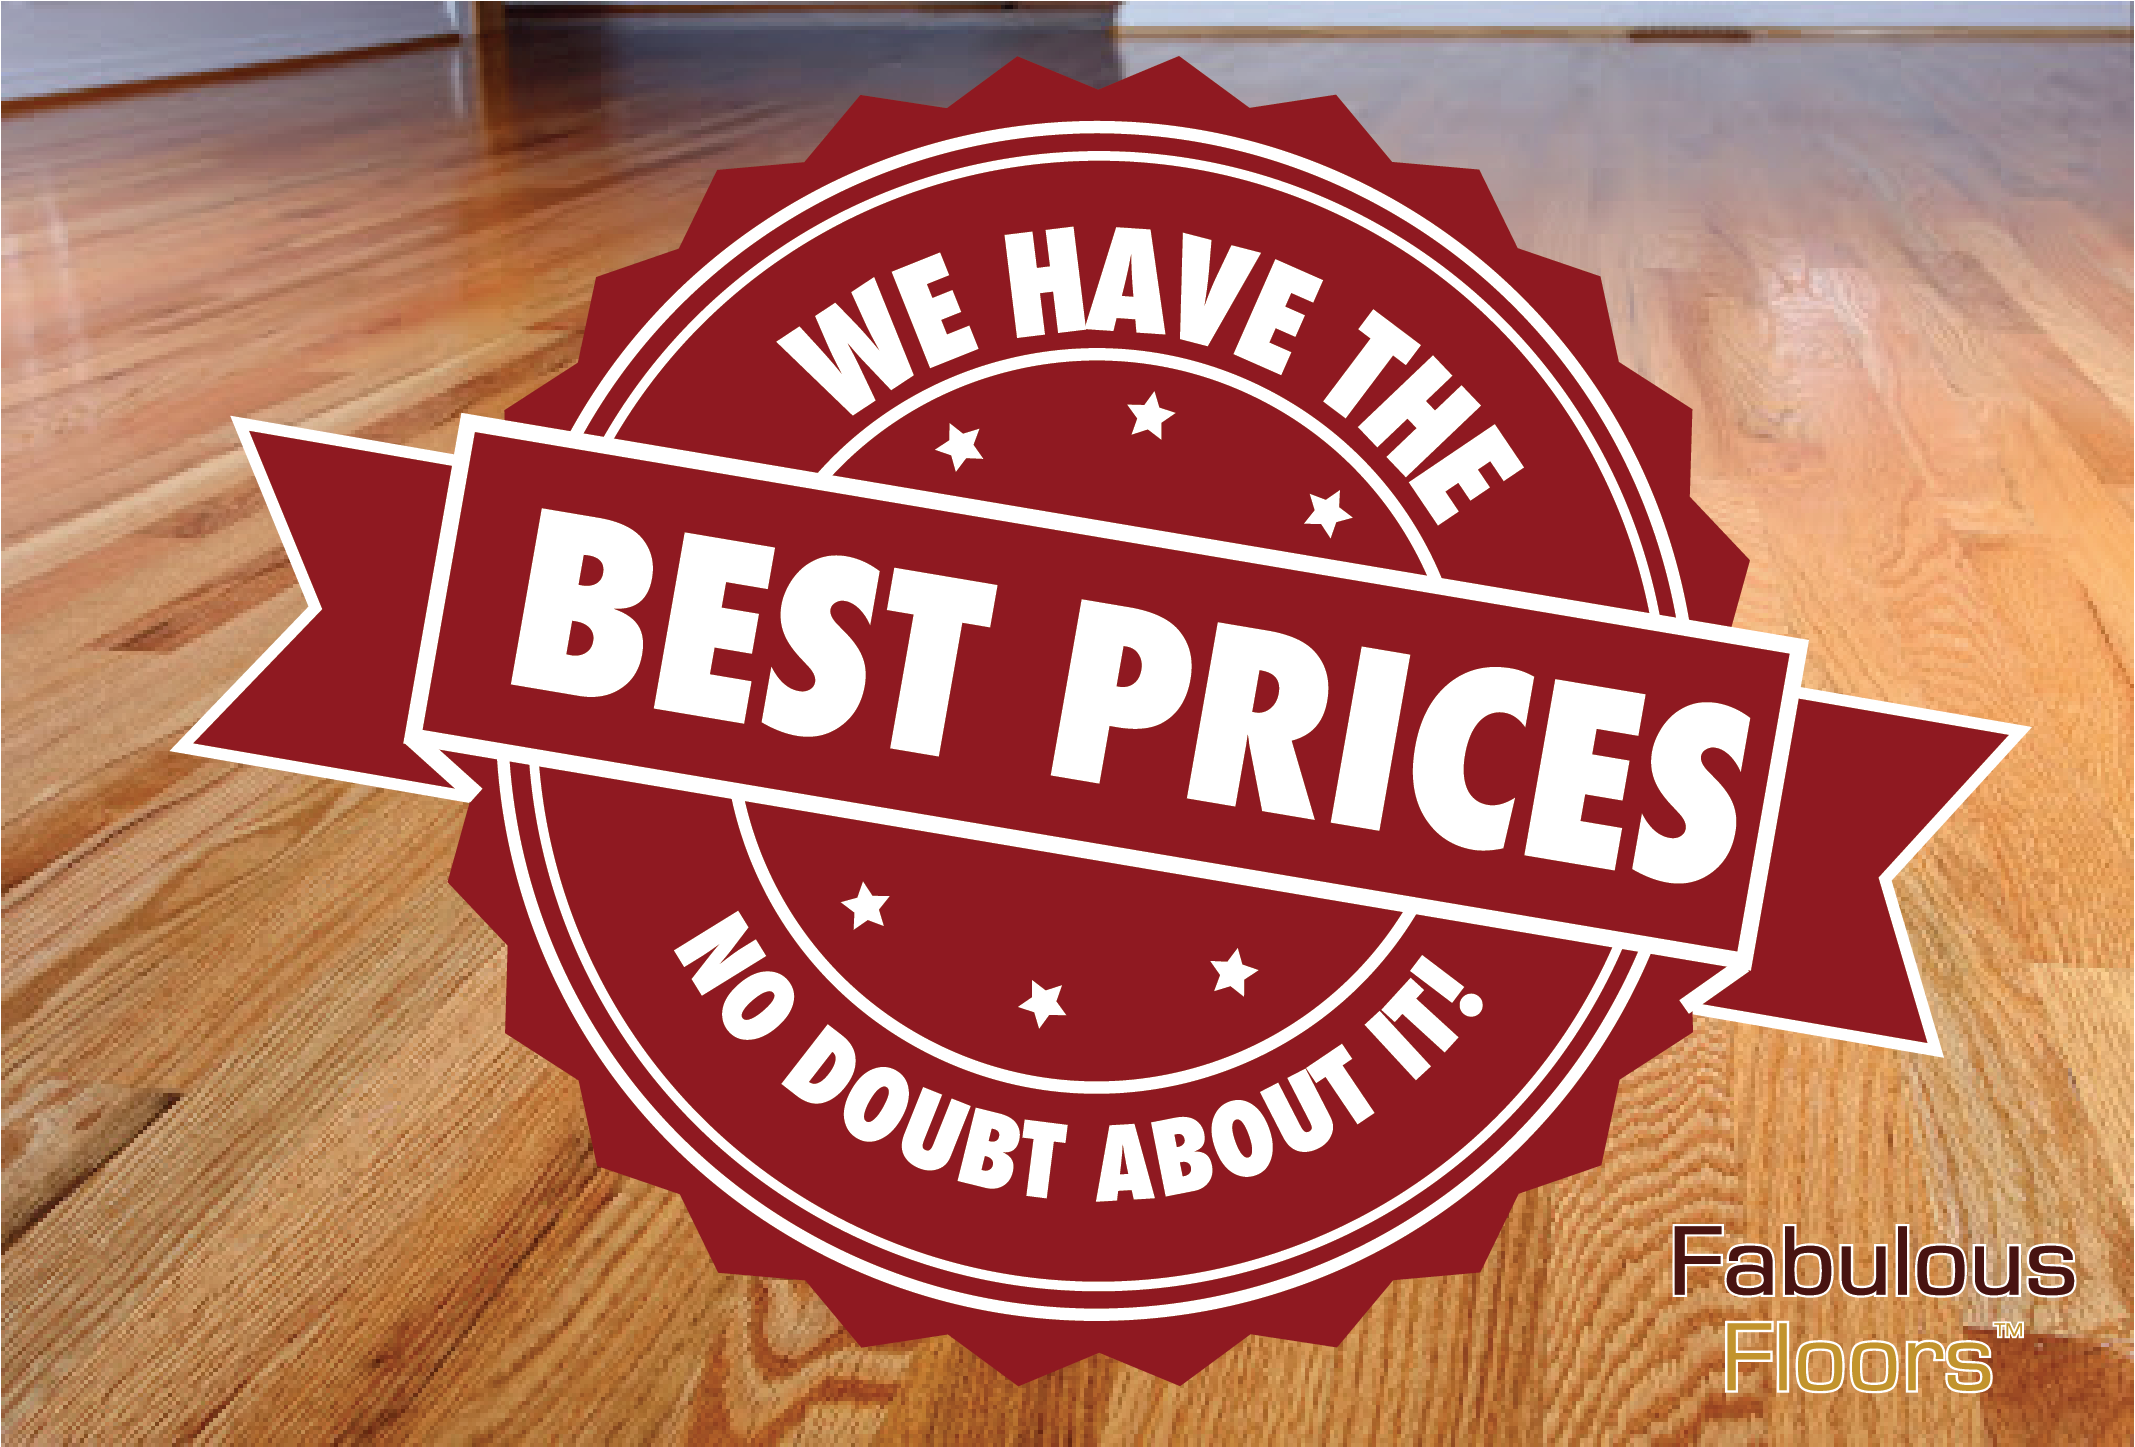 A graphic saying that we have the best prices, no doubt about it